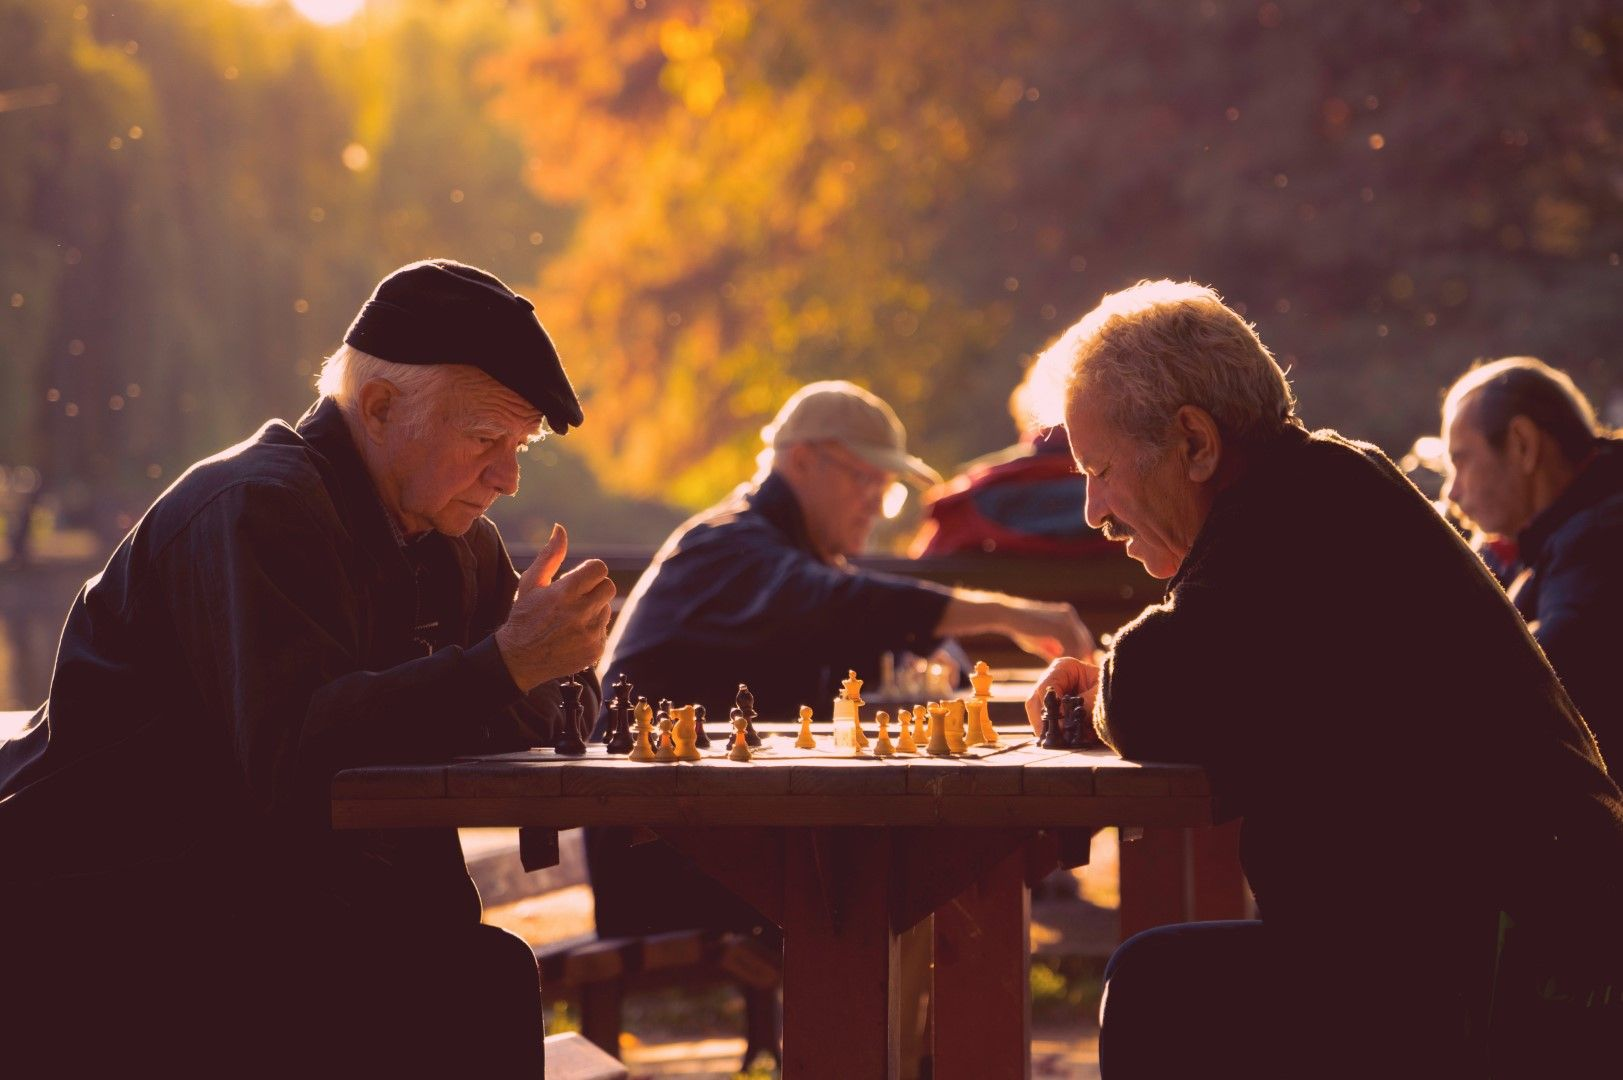 Game of chess-2